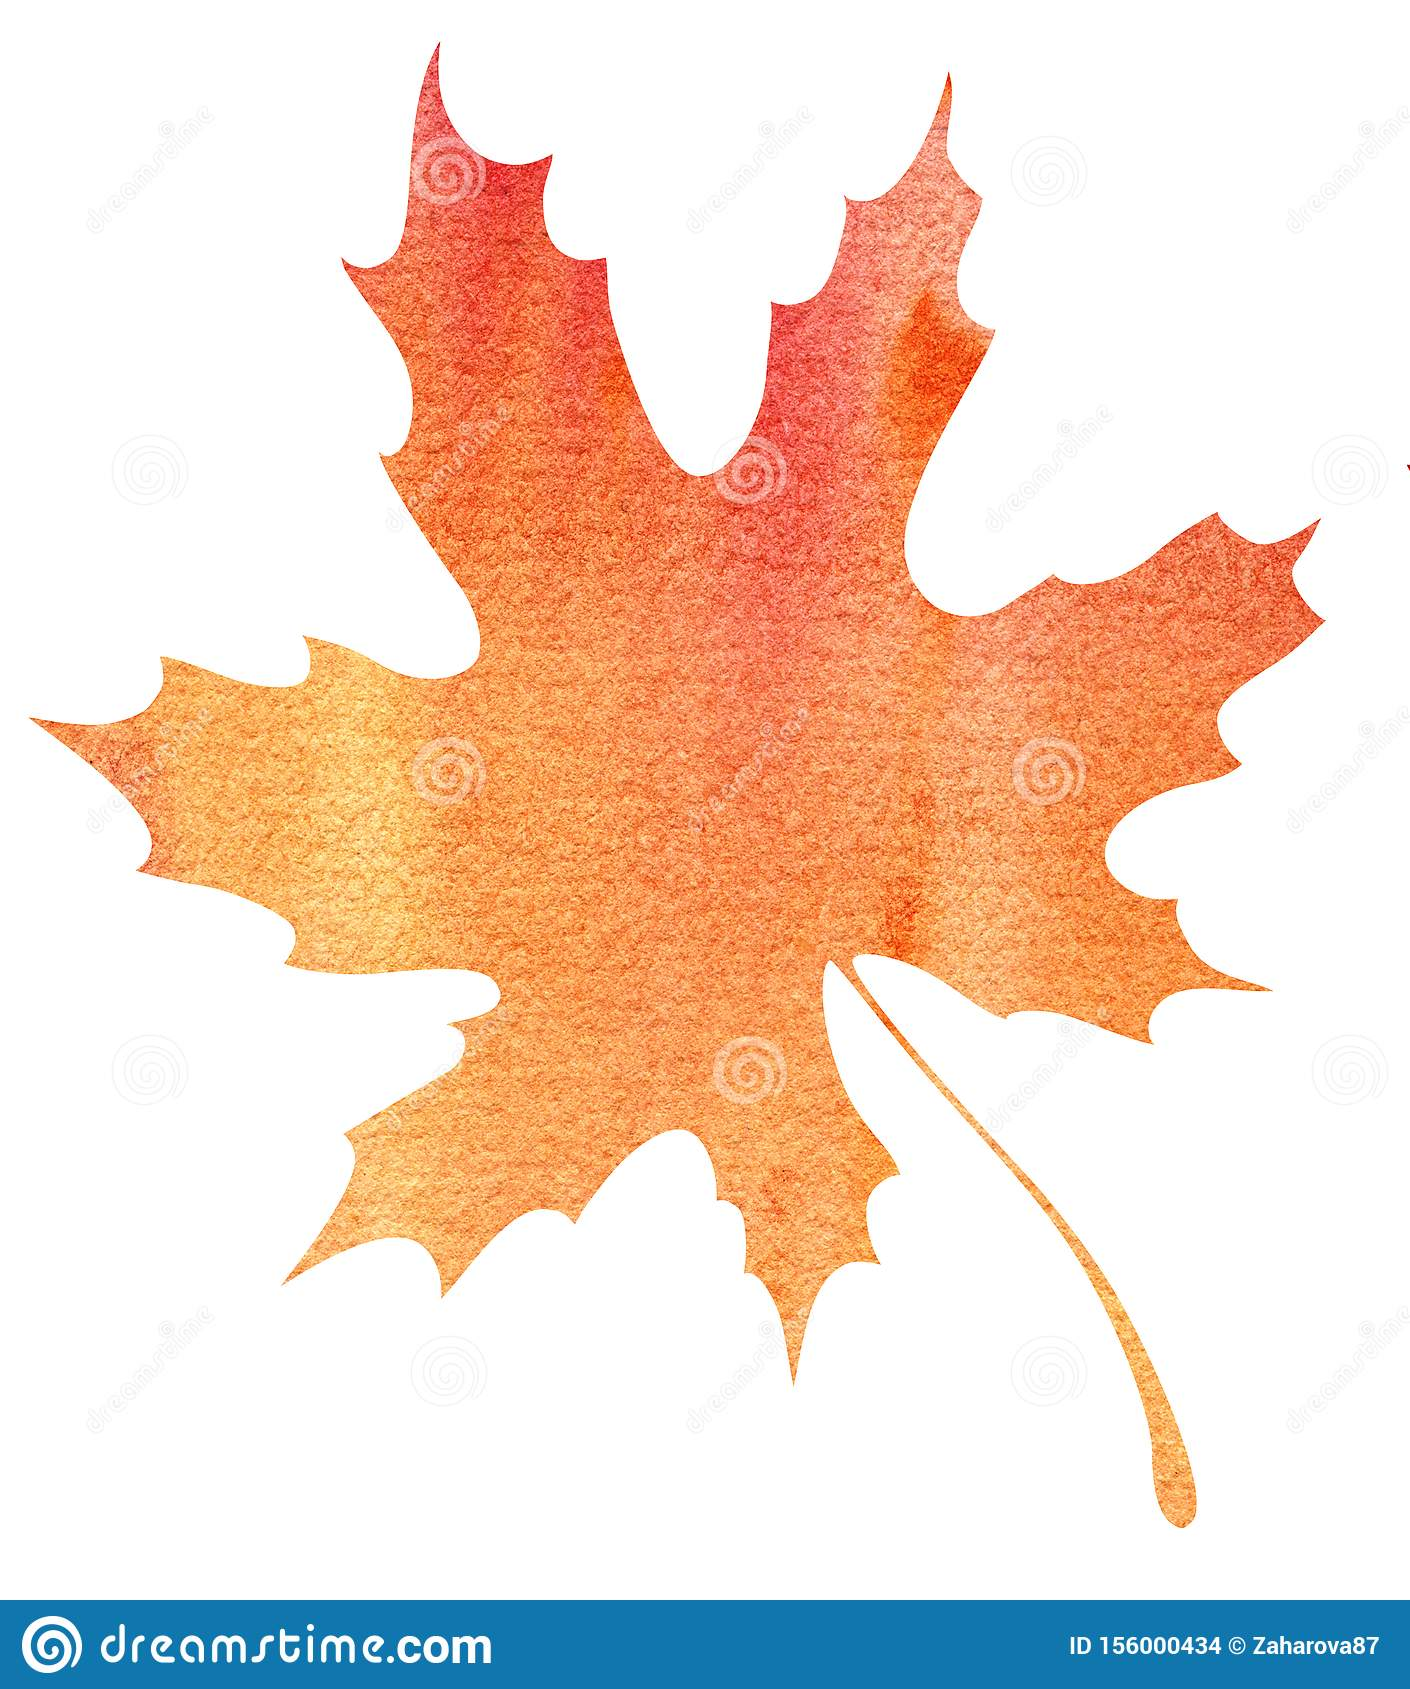 Autumn maple leaf. Orange-yellow gradient. Abstract watercolor fill. Hand drawn illustration. Isolated on a white